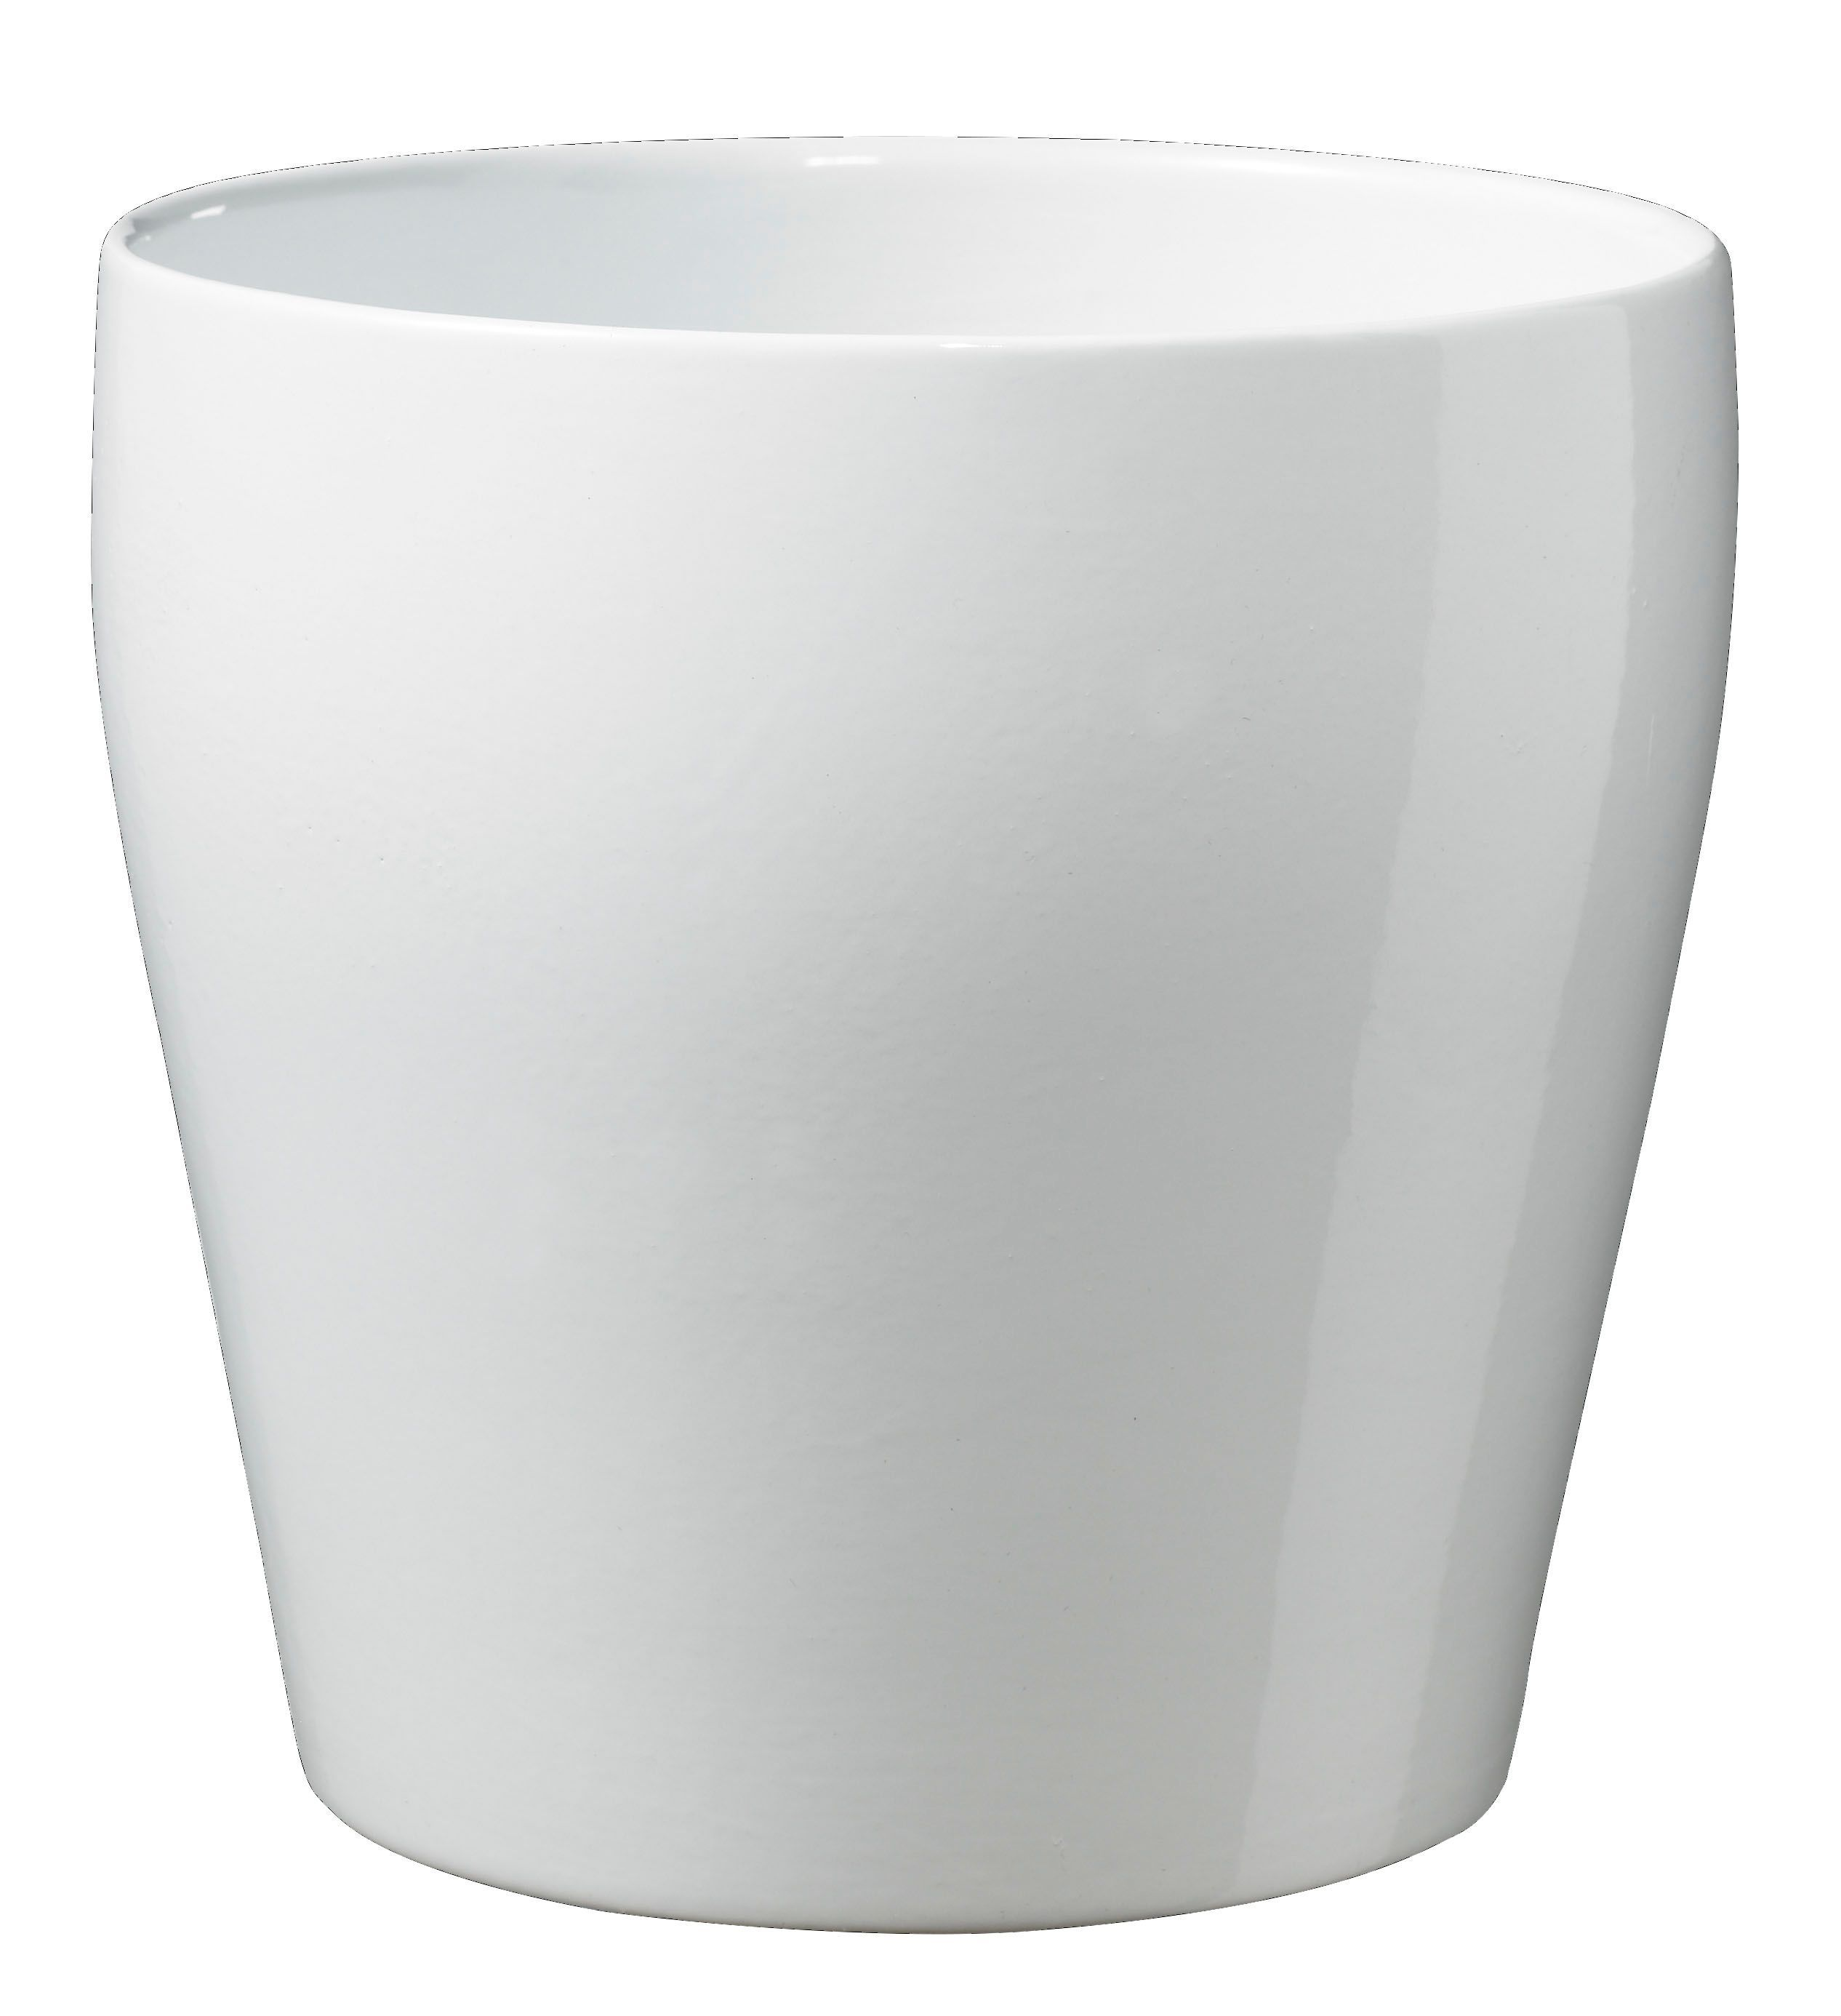 white. yellow. assorted colors. Price Range - Plant pots for inside and out. Spruce up your room or garden with our stylish and practical plant pots. If you're green-fingered, you'll find plenty of designs to keep your outdoor areas looking fresh, tidy and contemporary. For those less garden savvy, our range features a load of hassle.